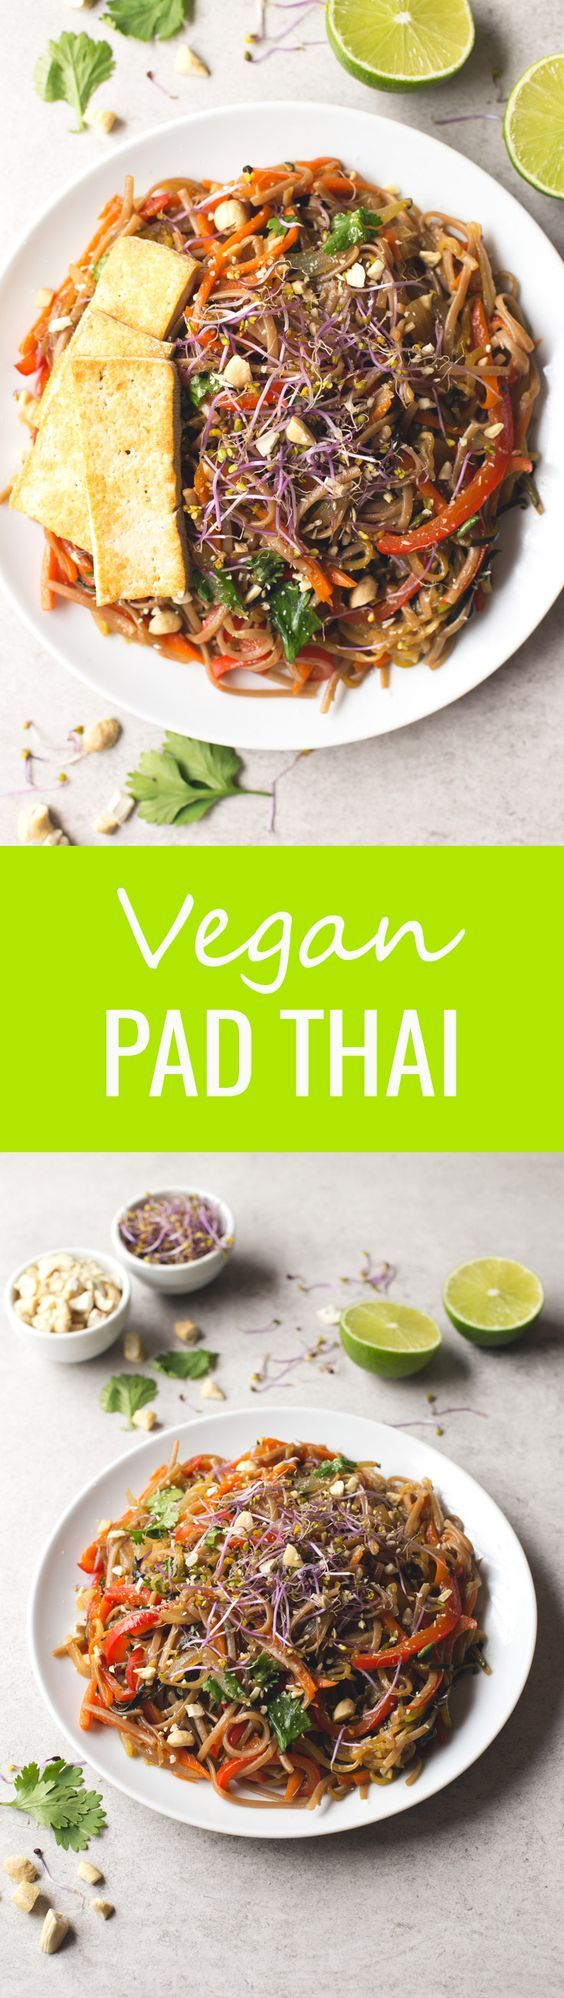 Vegan Pad Thai - I love this super healthy vegan Pad Thai recipe so much it's one of my favorite dishes at the moment!